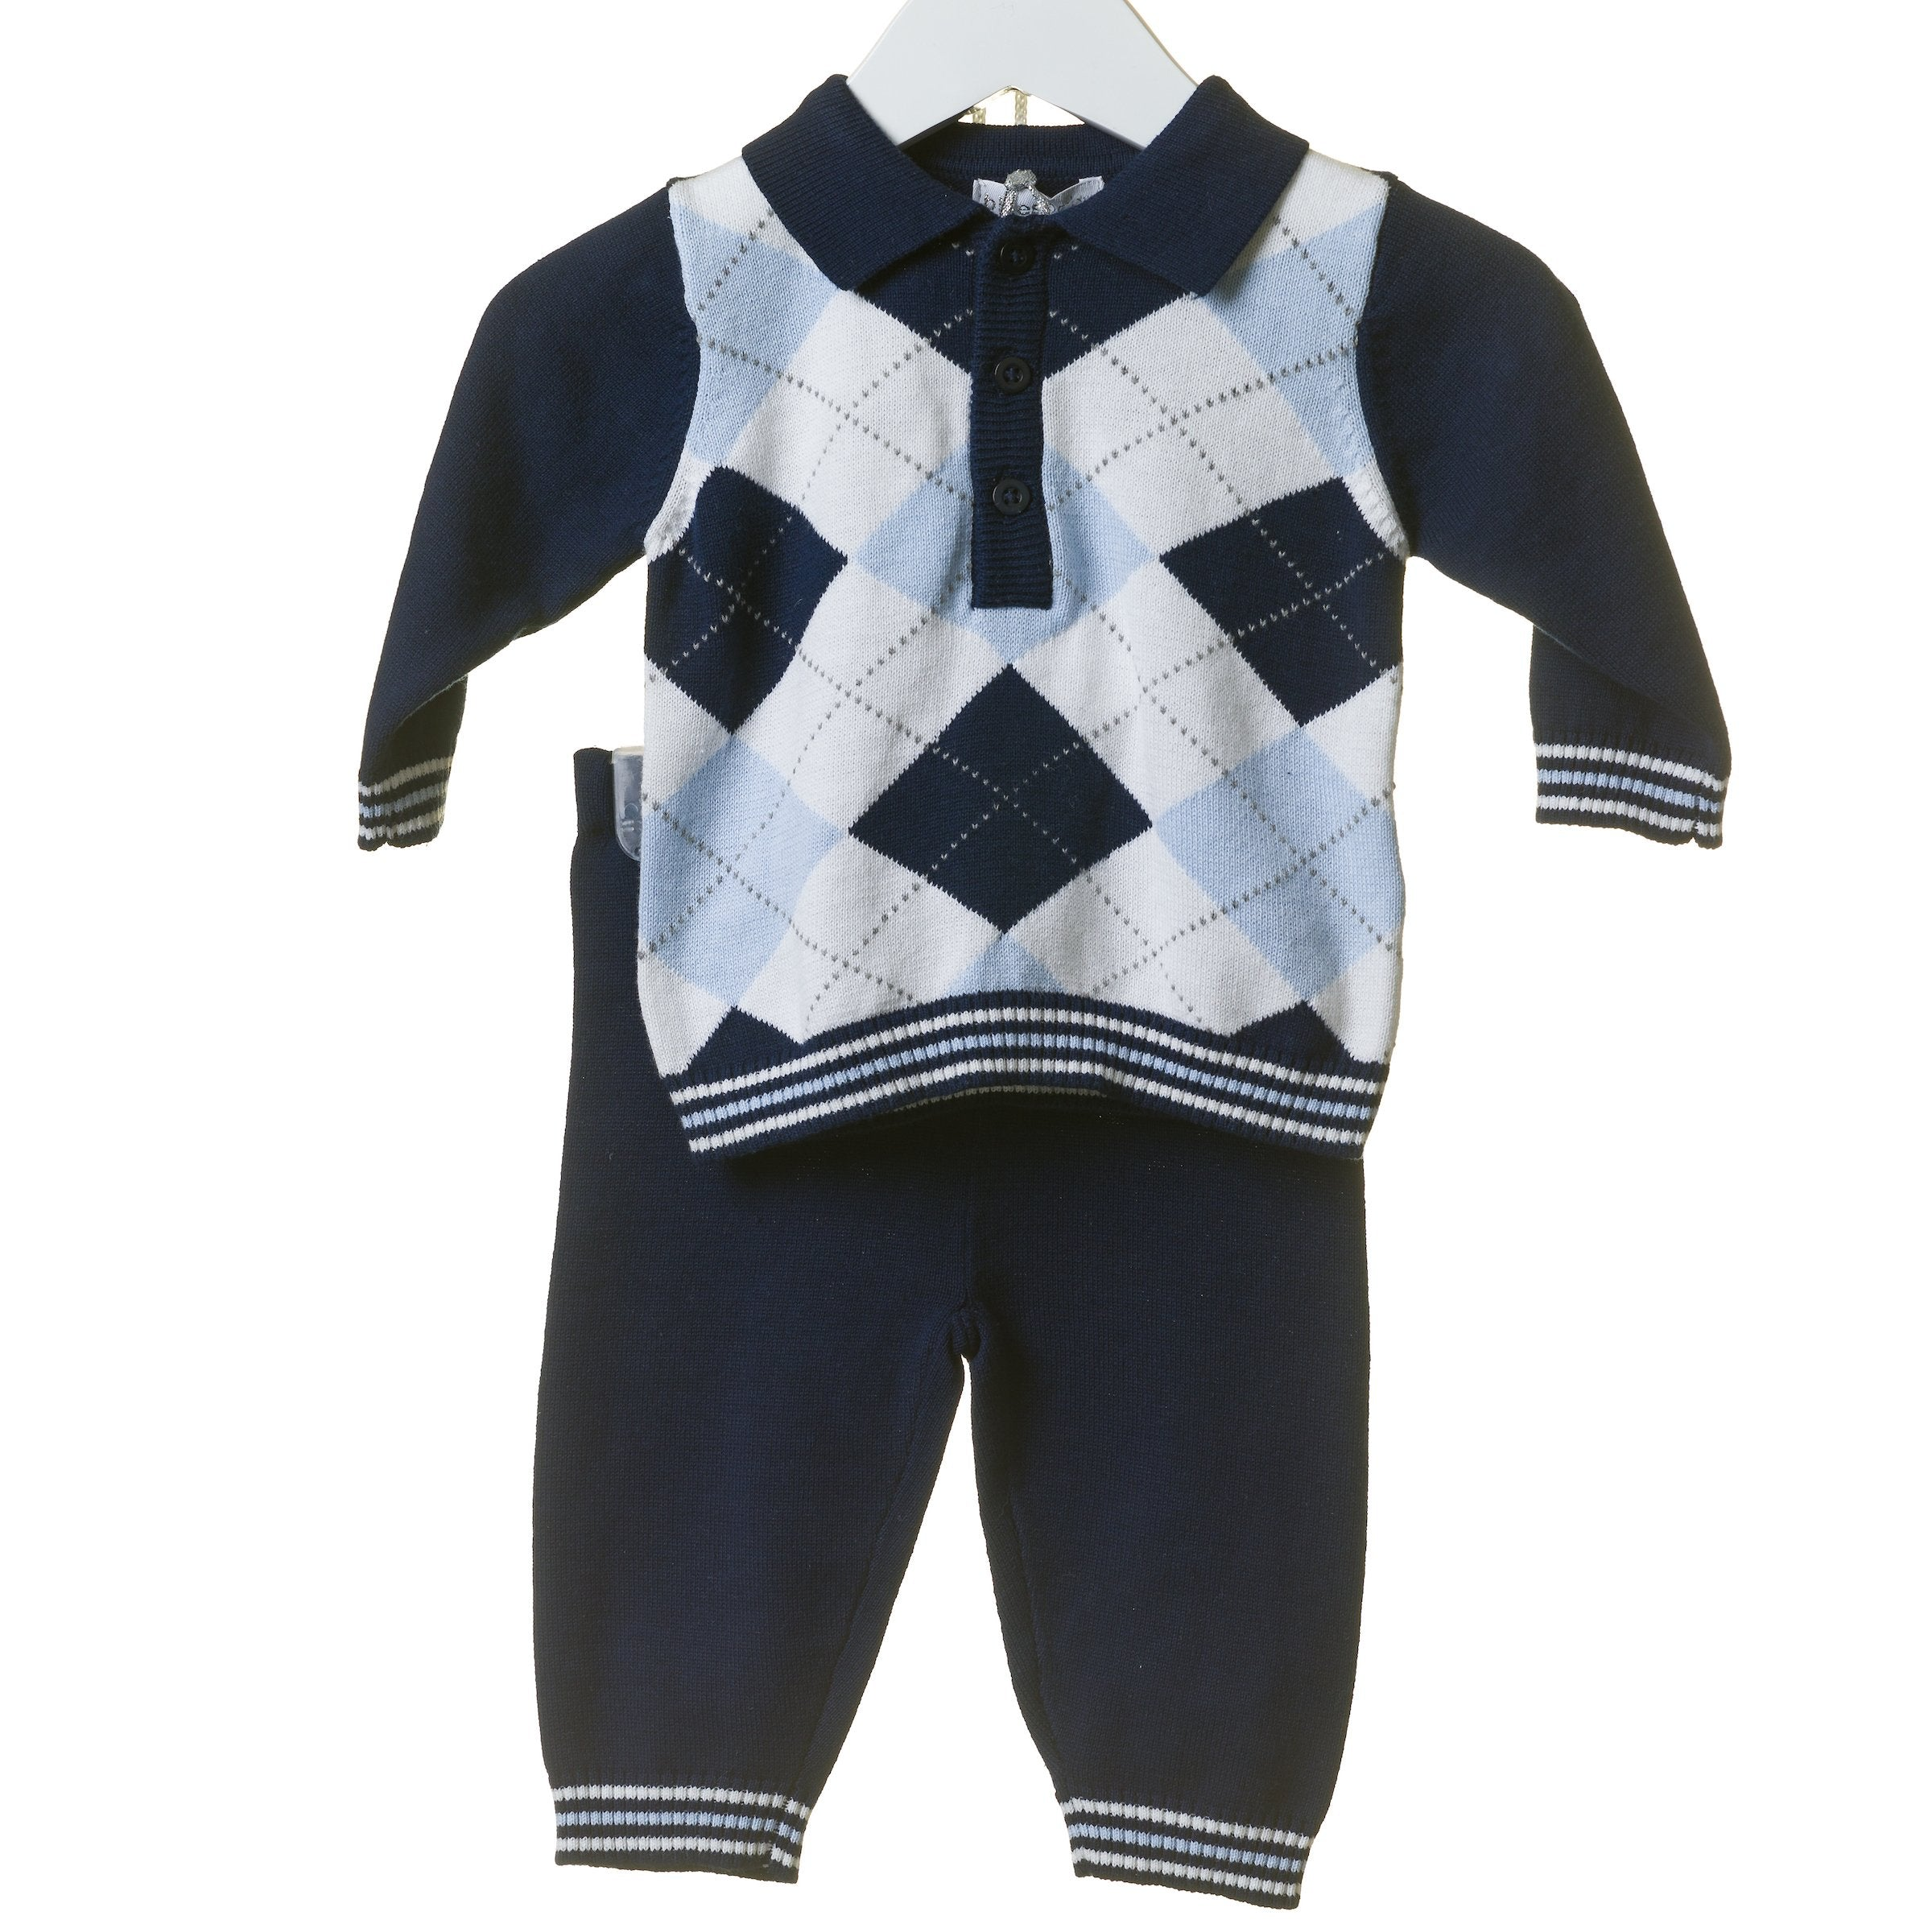 Argyle Navy Blues Baby Tracksuit